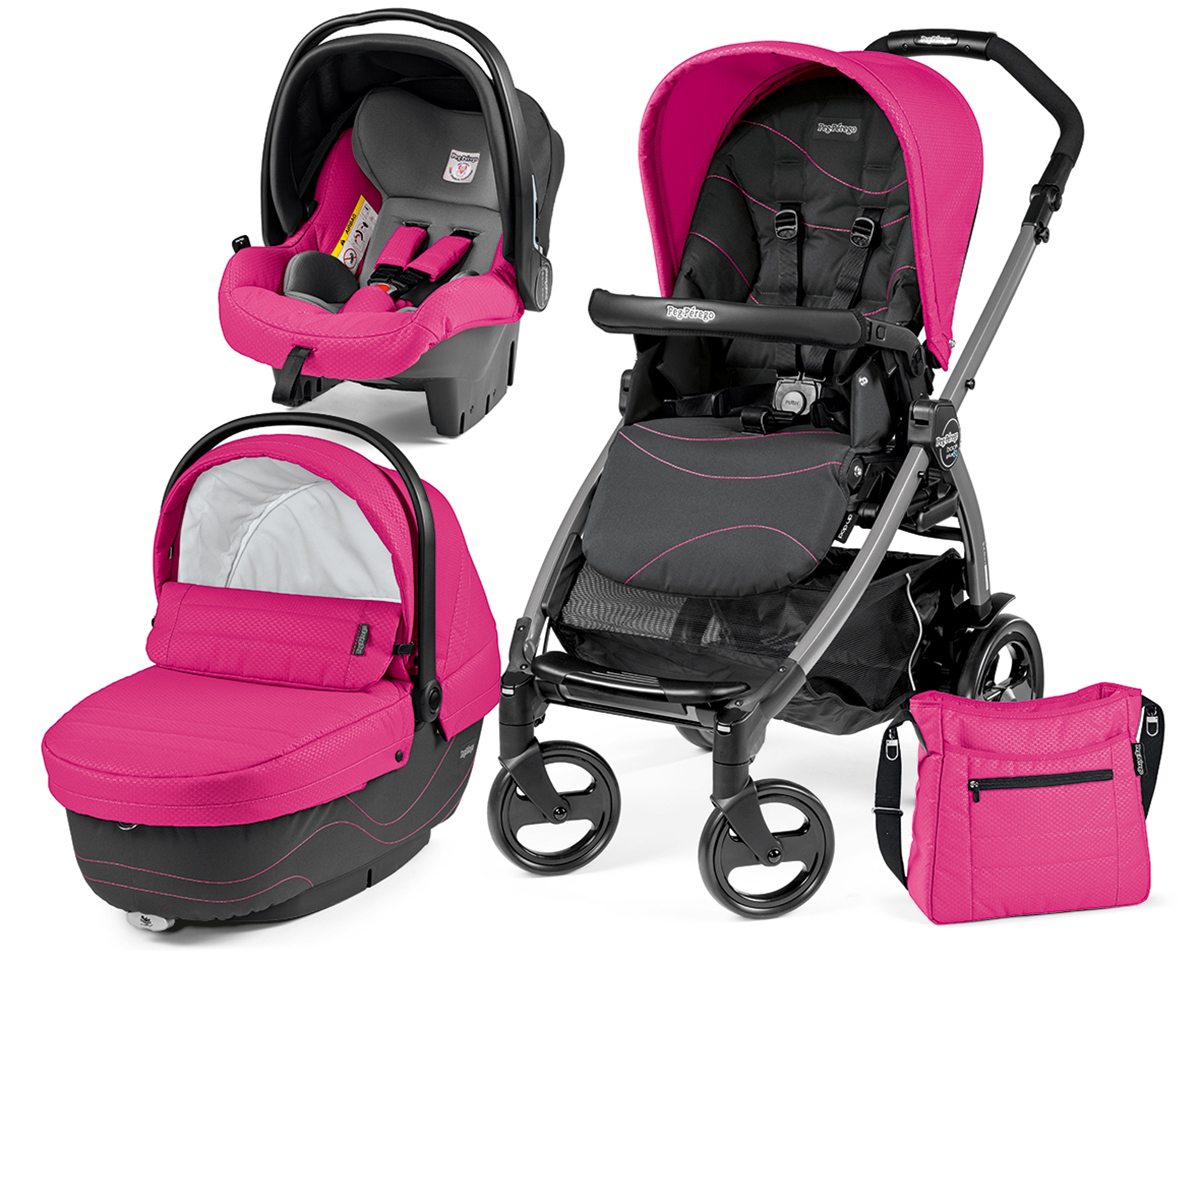 hr_2017_09_01_peg_perego_bloom_pink.jpg